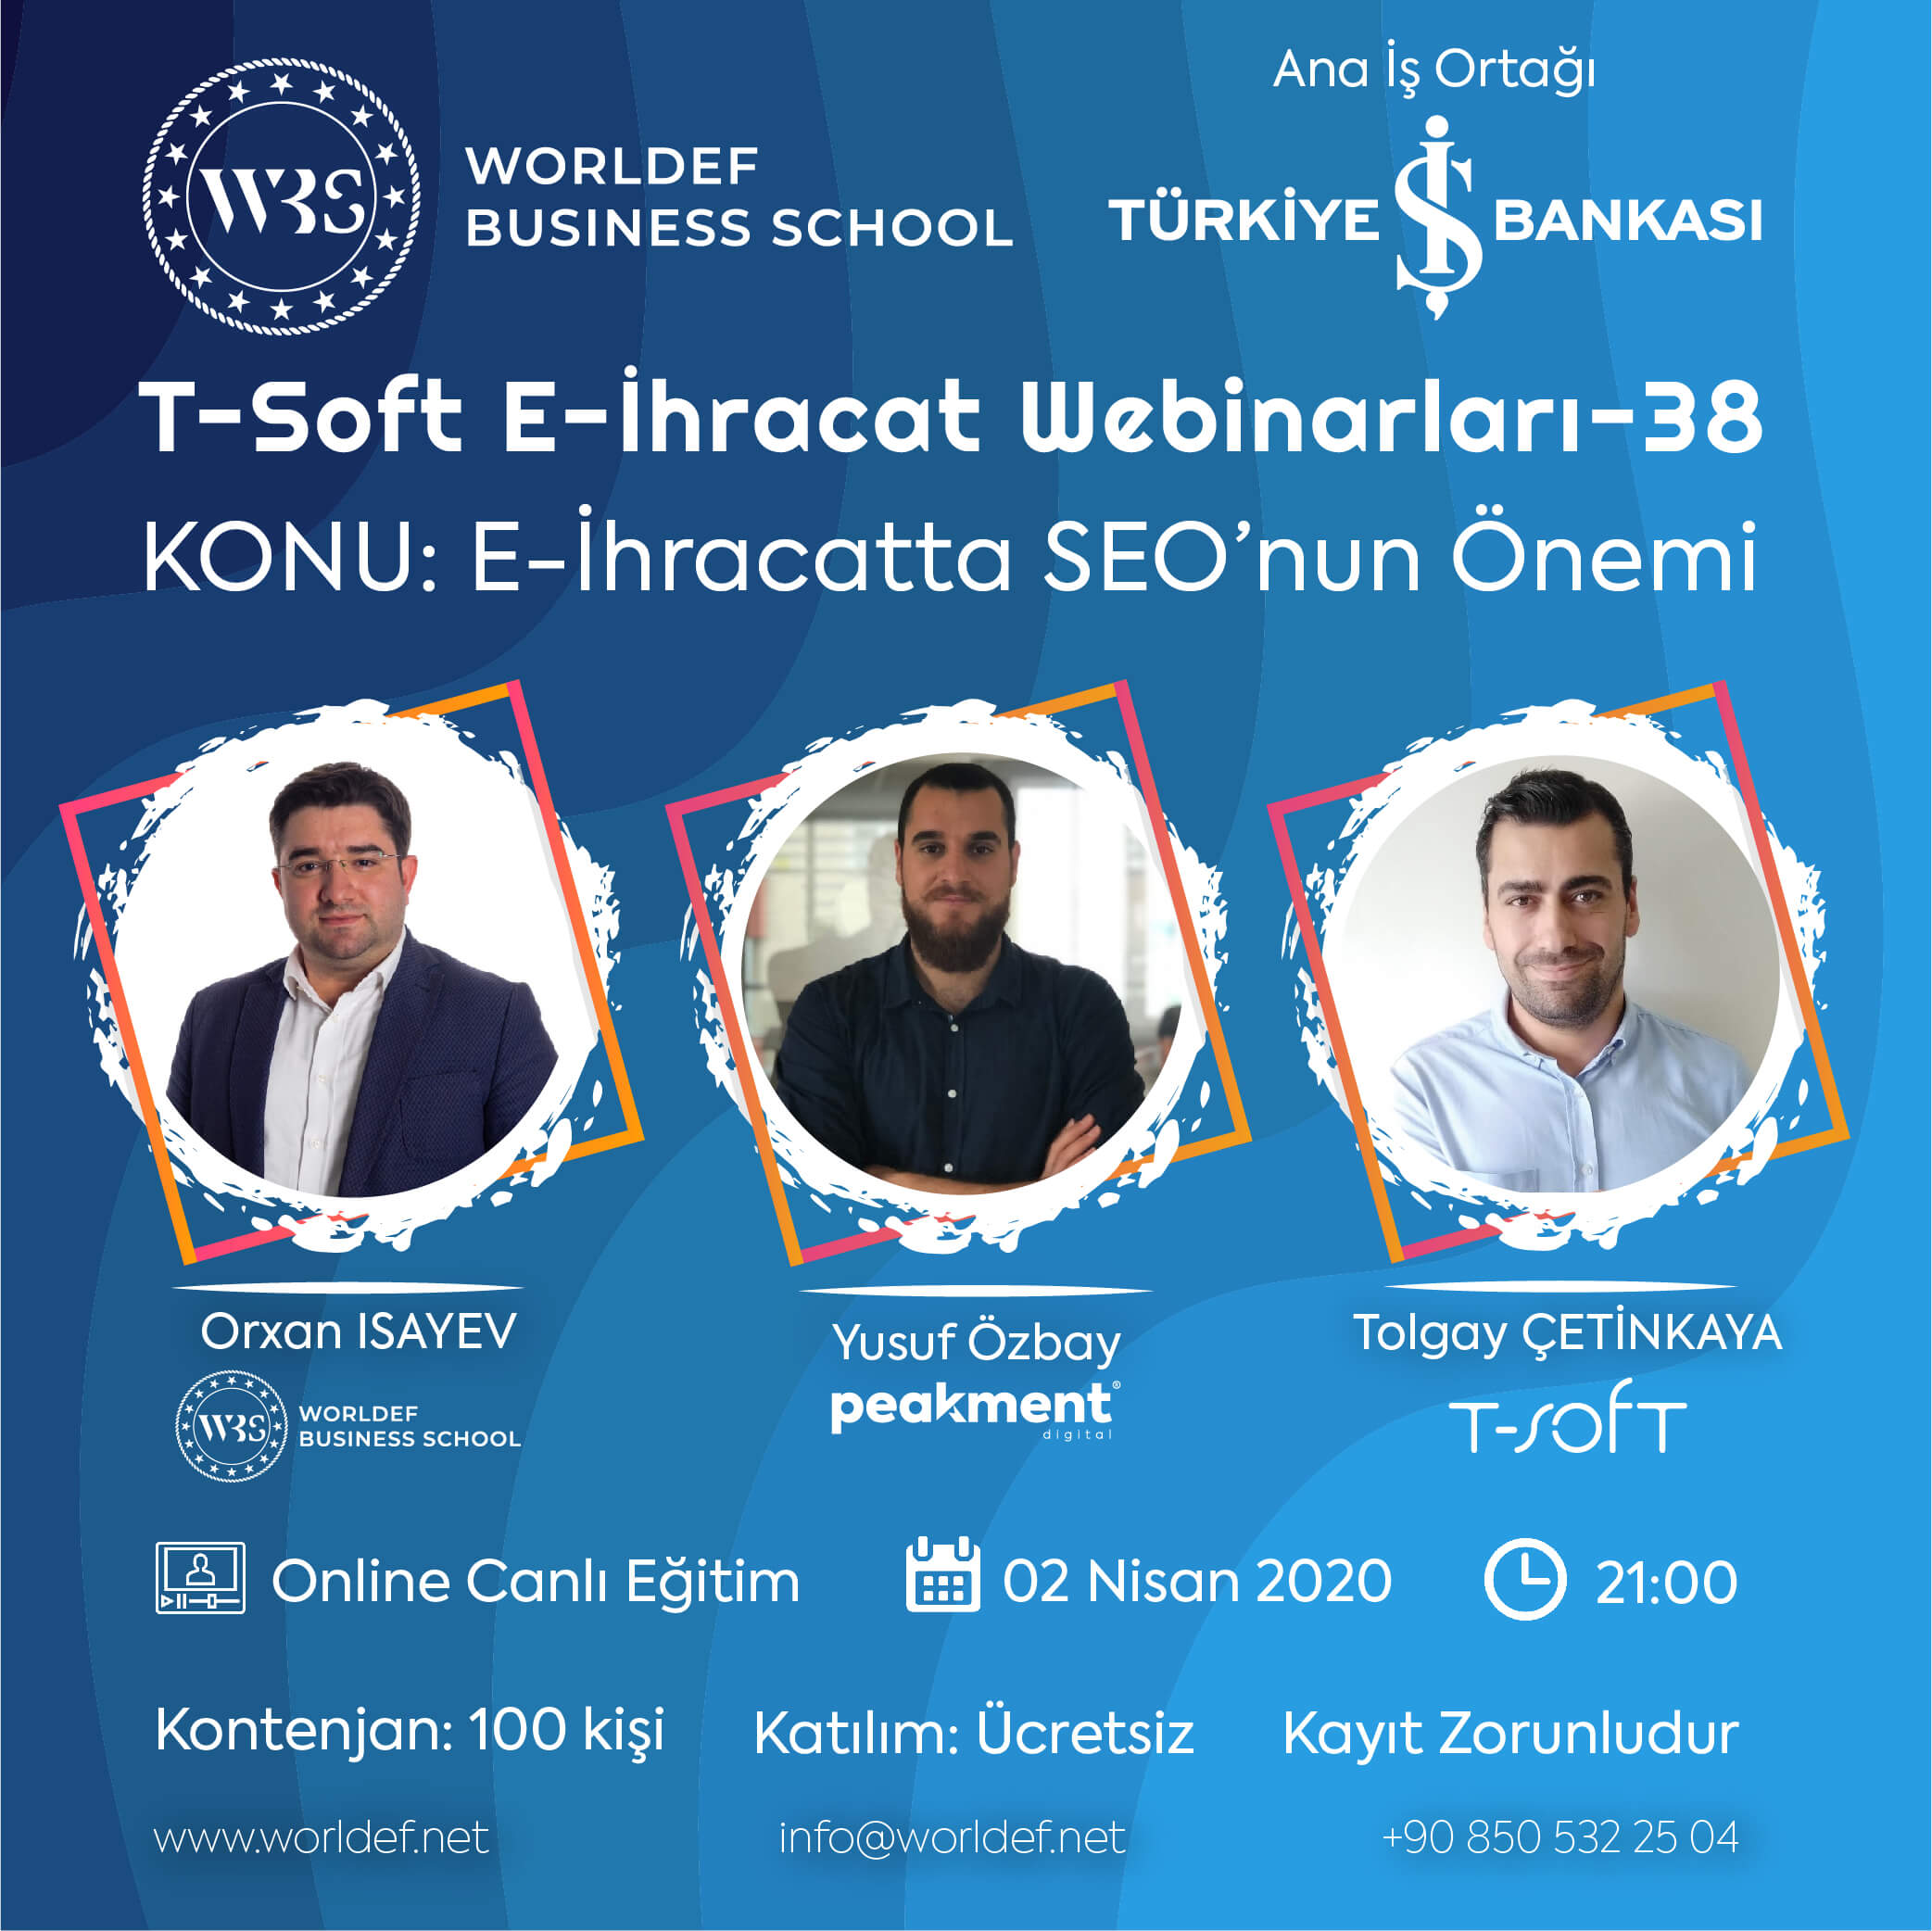 In the WBS Cross-Border E-Commerce Webinars series, this week we will discuss the importance and place of Search Engine Optimization (SEO) in cross-border e-commerce! Our guest will be SEO expert Yusuf Özbay!